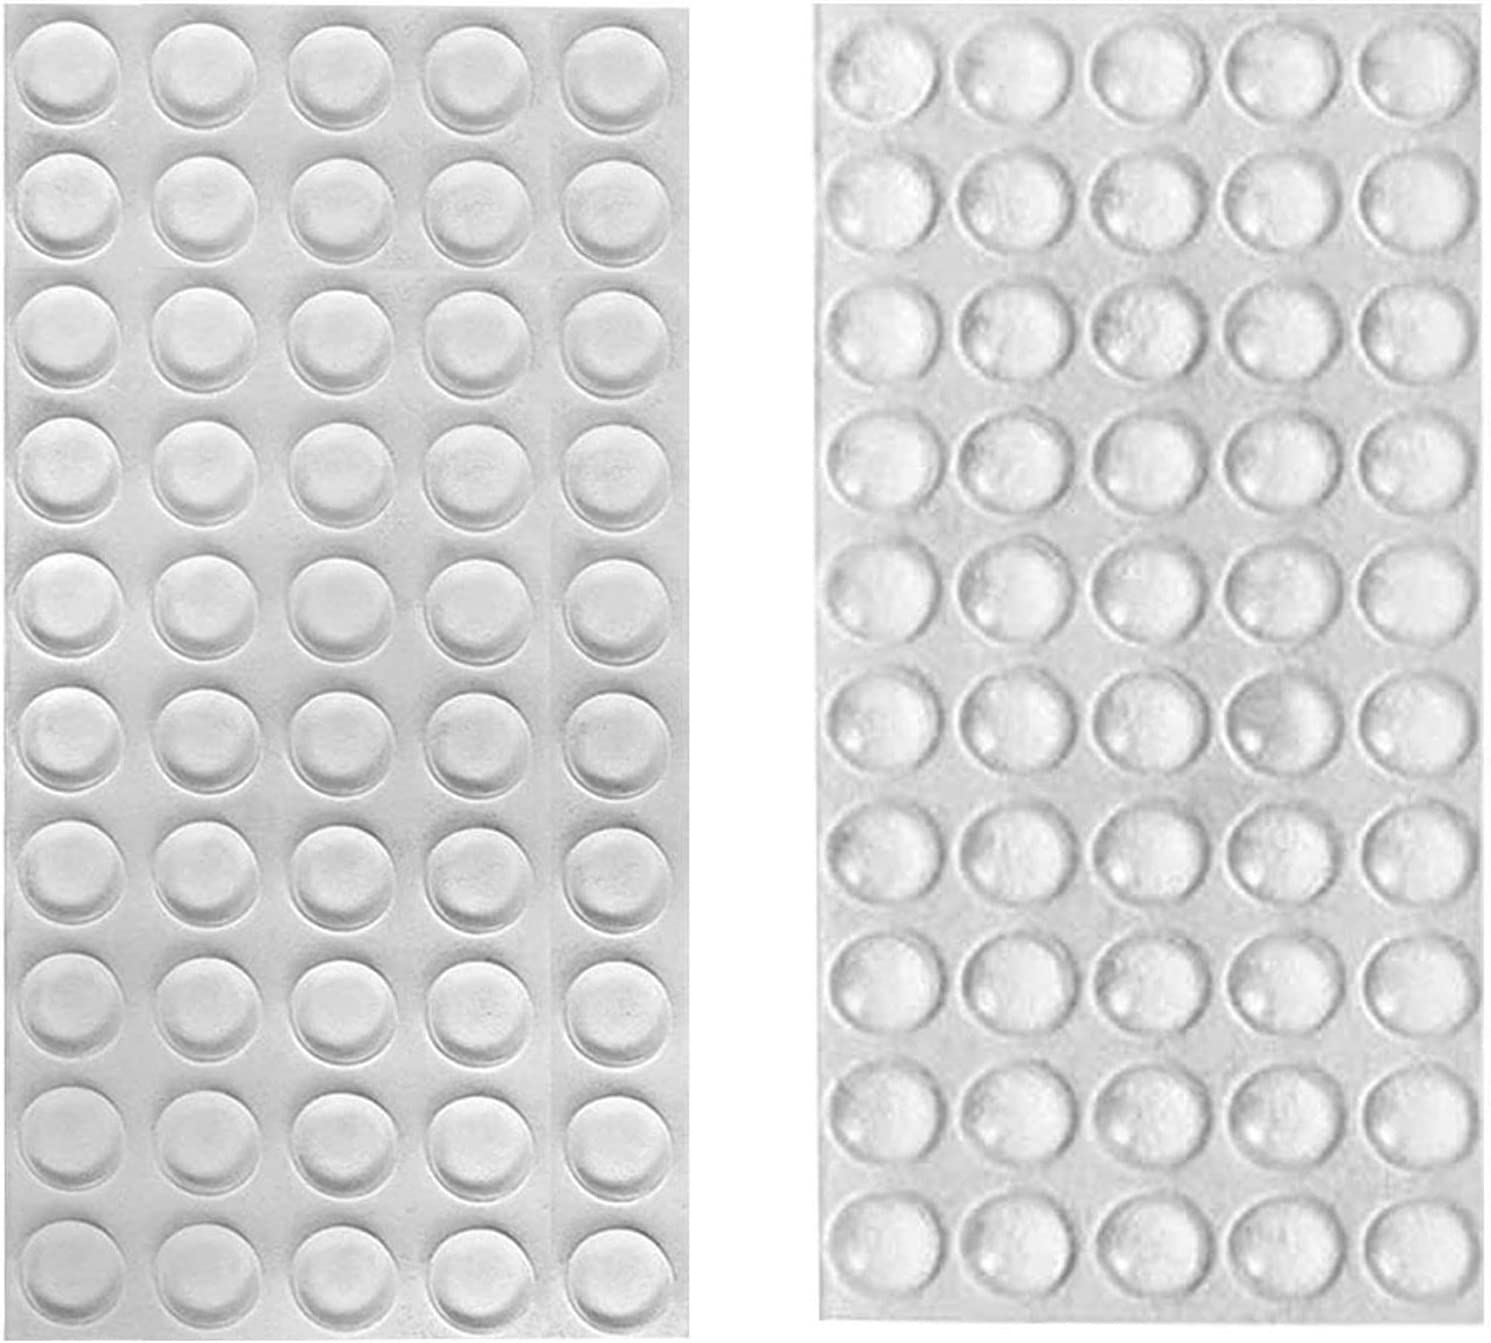 huangzhao Rubber Stoppers Clear Rubber Feet Adhesive Bumper Pads Cabinet Door Bumpers 100PCS Self Stick Bumpers Sound Dampening for Drawers, Glass Tops, Cutting Boards, Picture Frames, Small Furniture